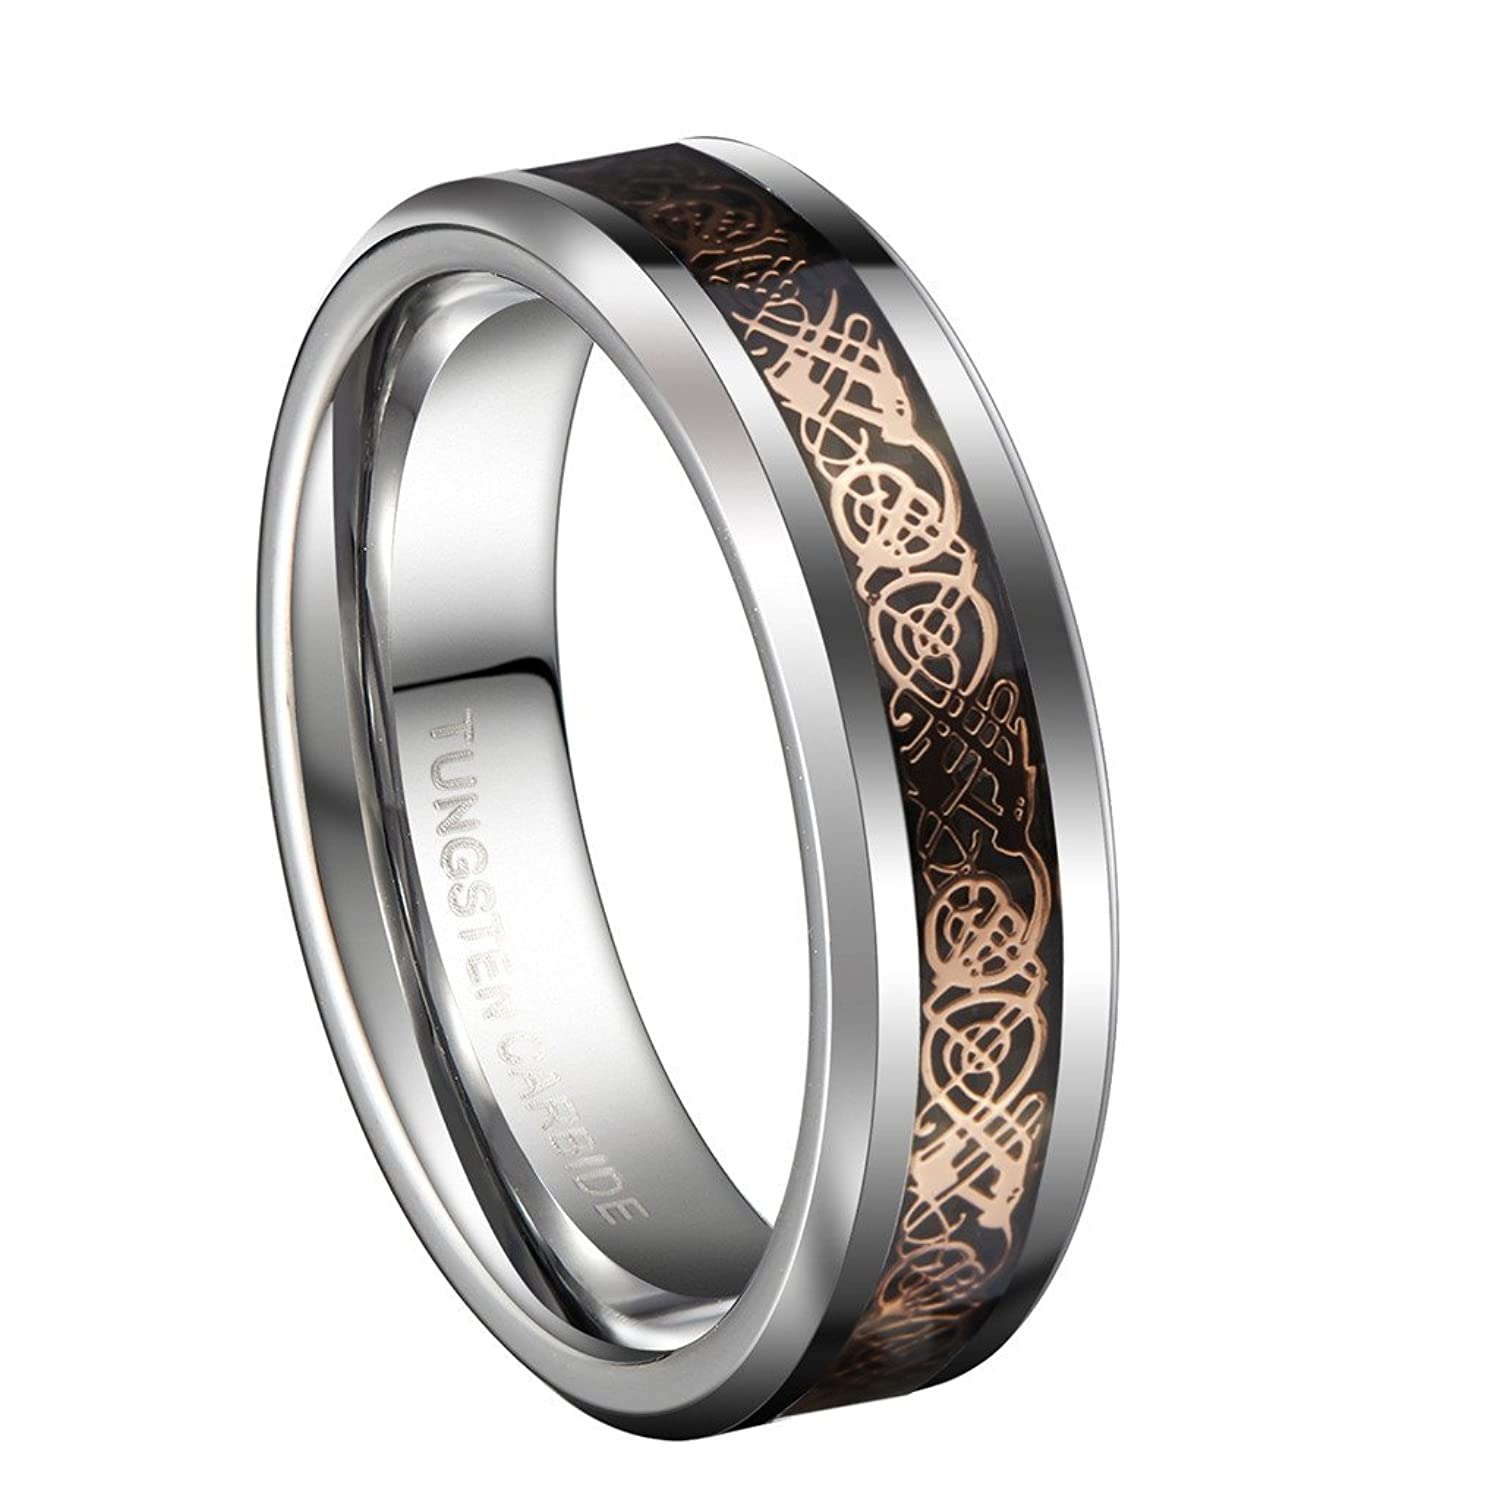 6mm Tungsten Carbide Wedding Band 18K Rose Gold Plated Celtic Dragon Engagement Matching Couple Ring